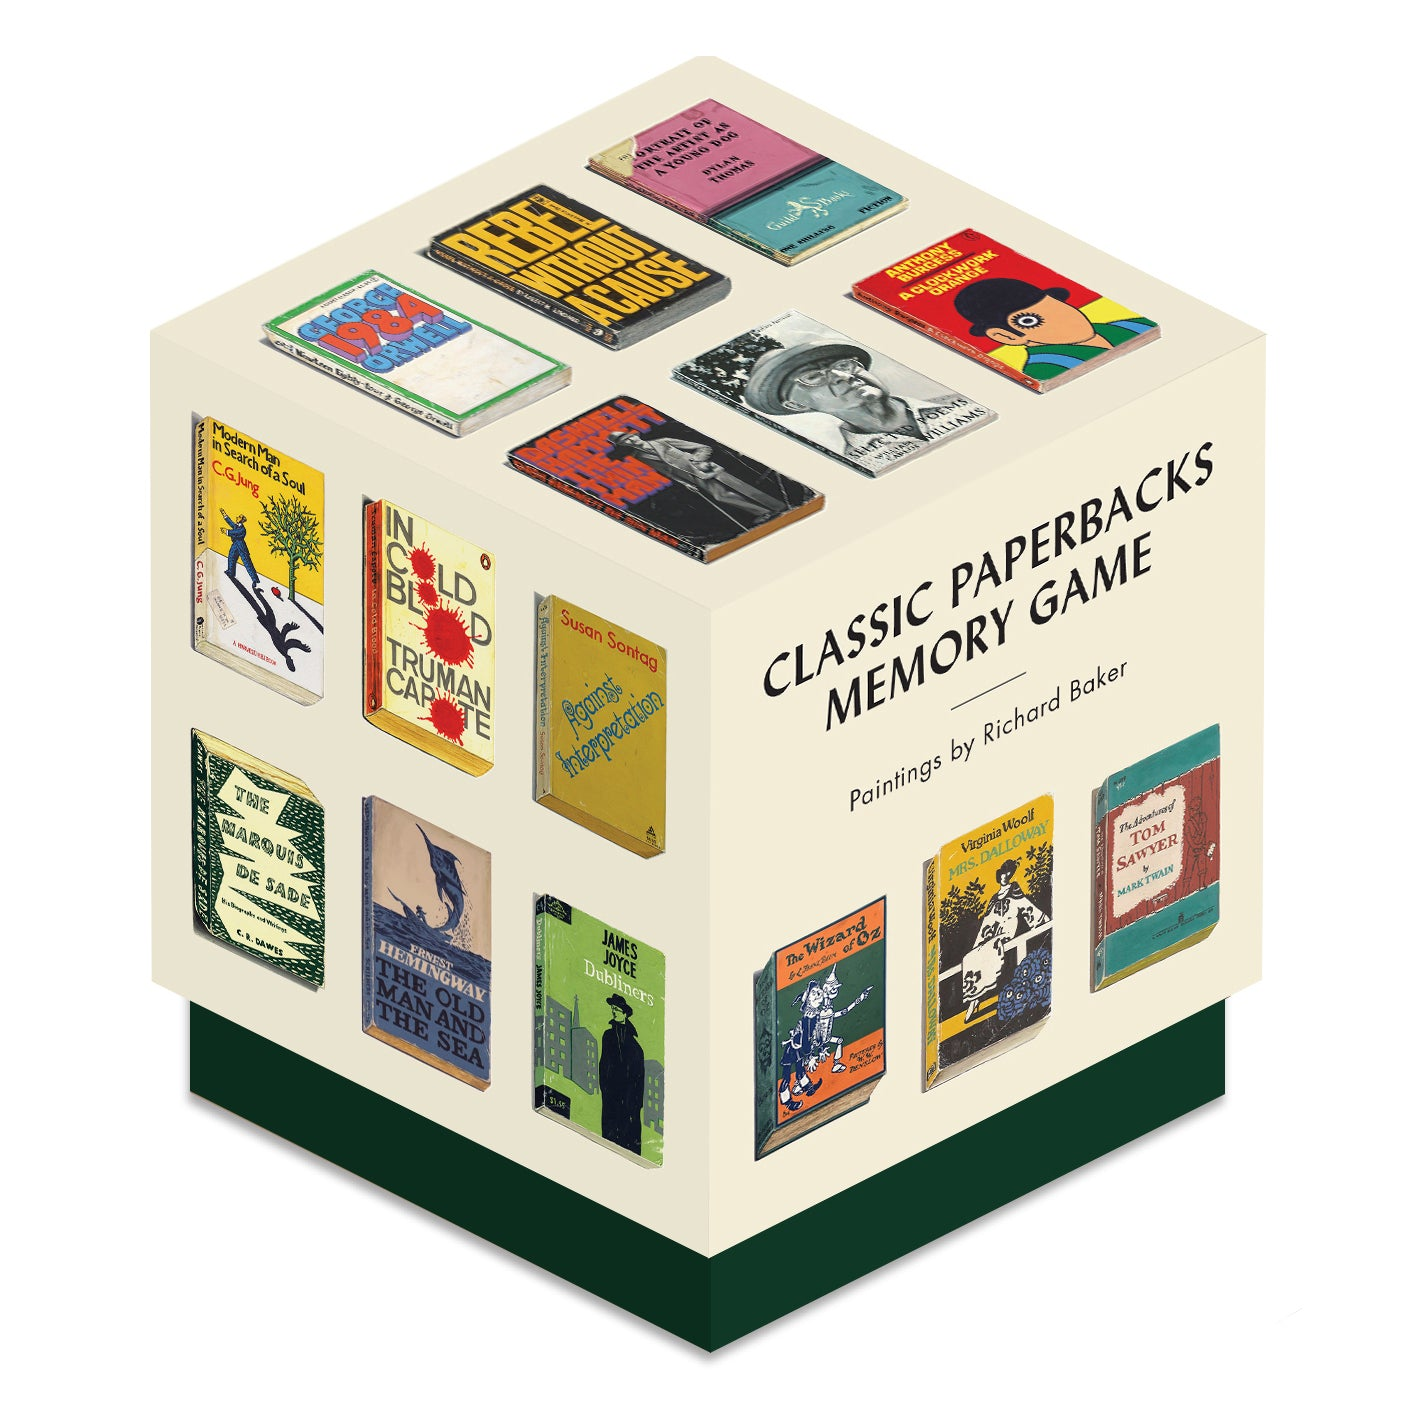 Box of Classic Paperbacks Memory Game